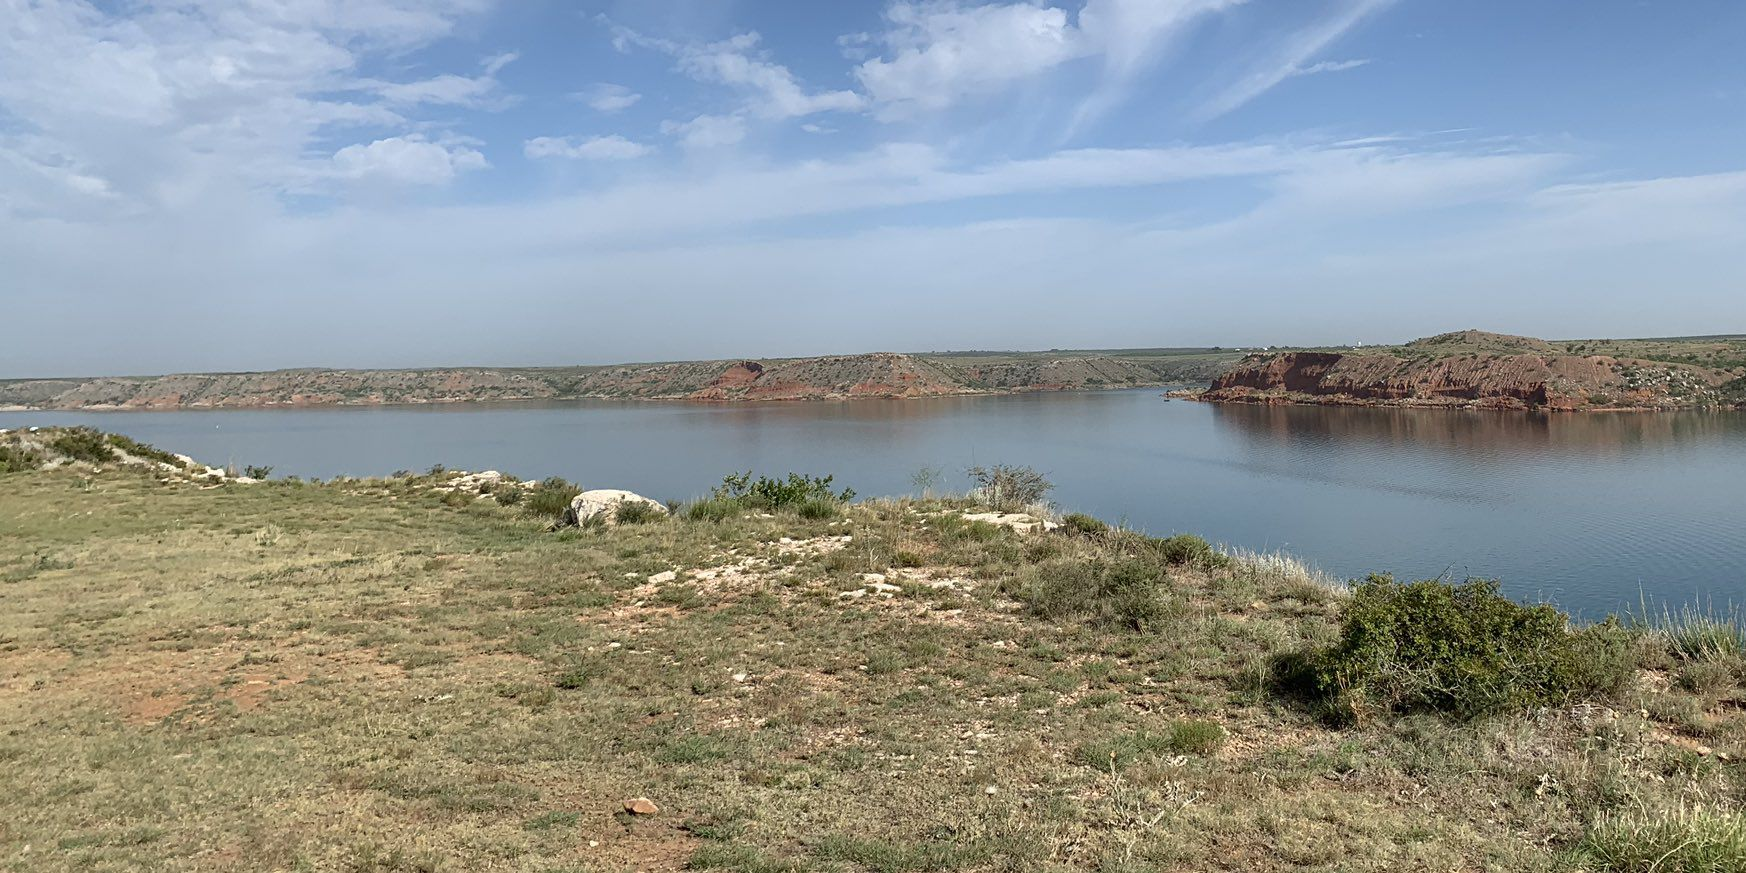 Lake Meredith experiencing record numbers in pandemic, expects big holiday weekend